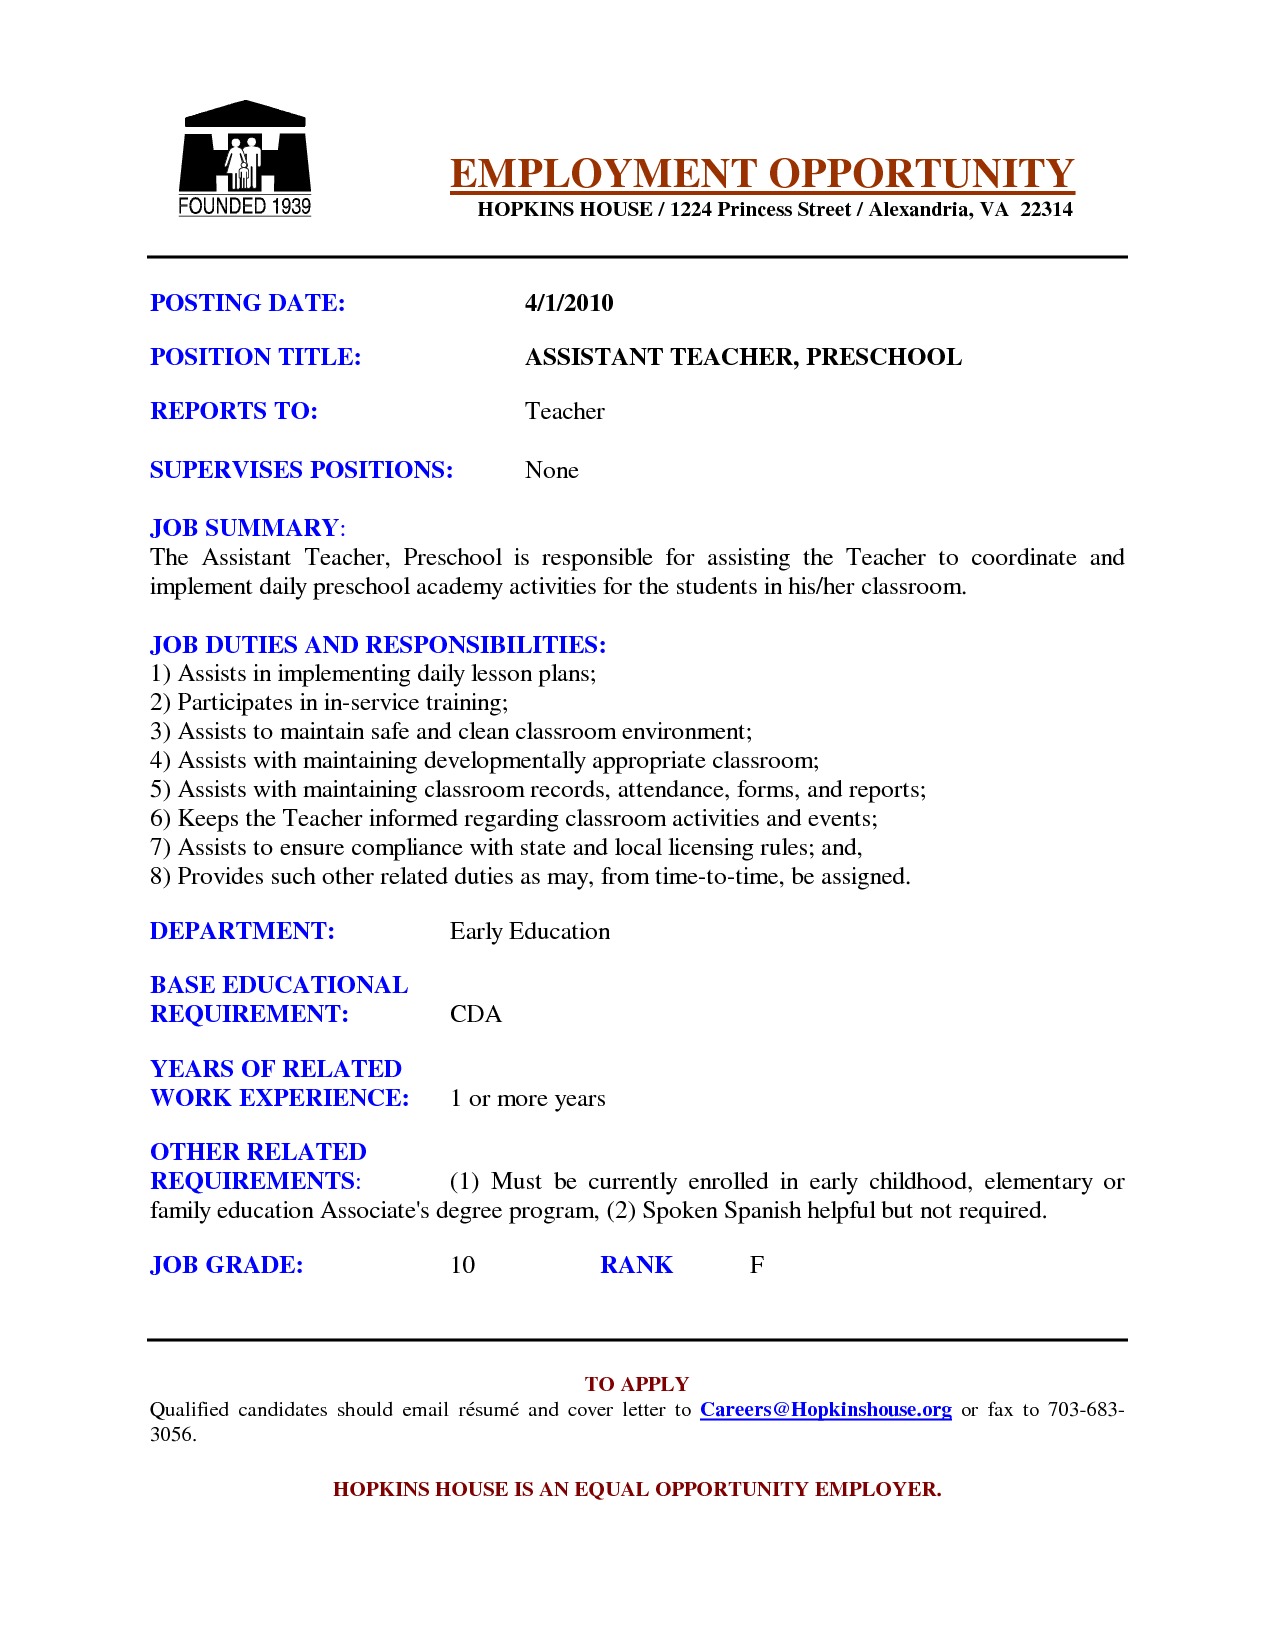 Teacher assistant Resume No Experience - Preschool assistant Teacher Resume Examples Google Search